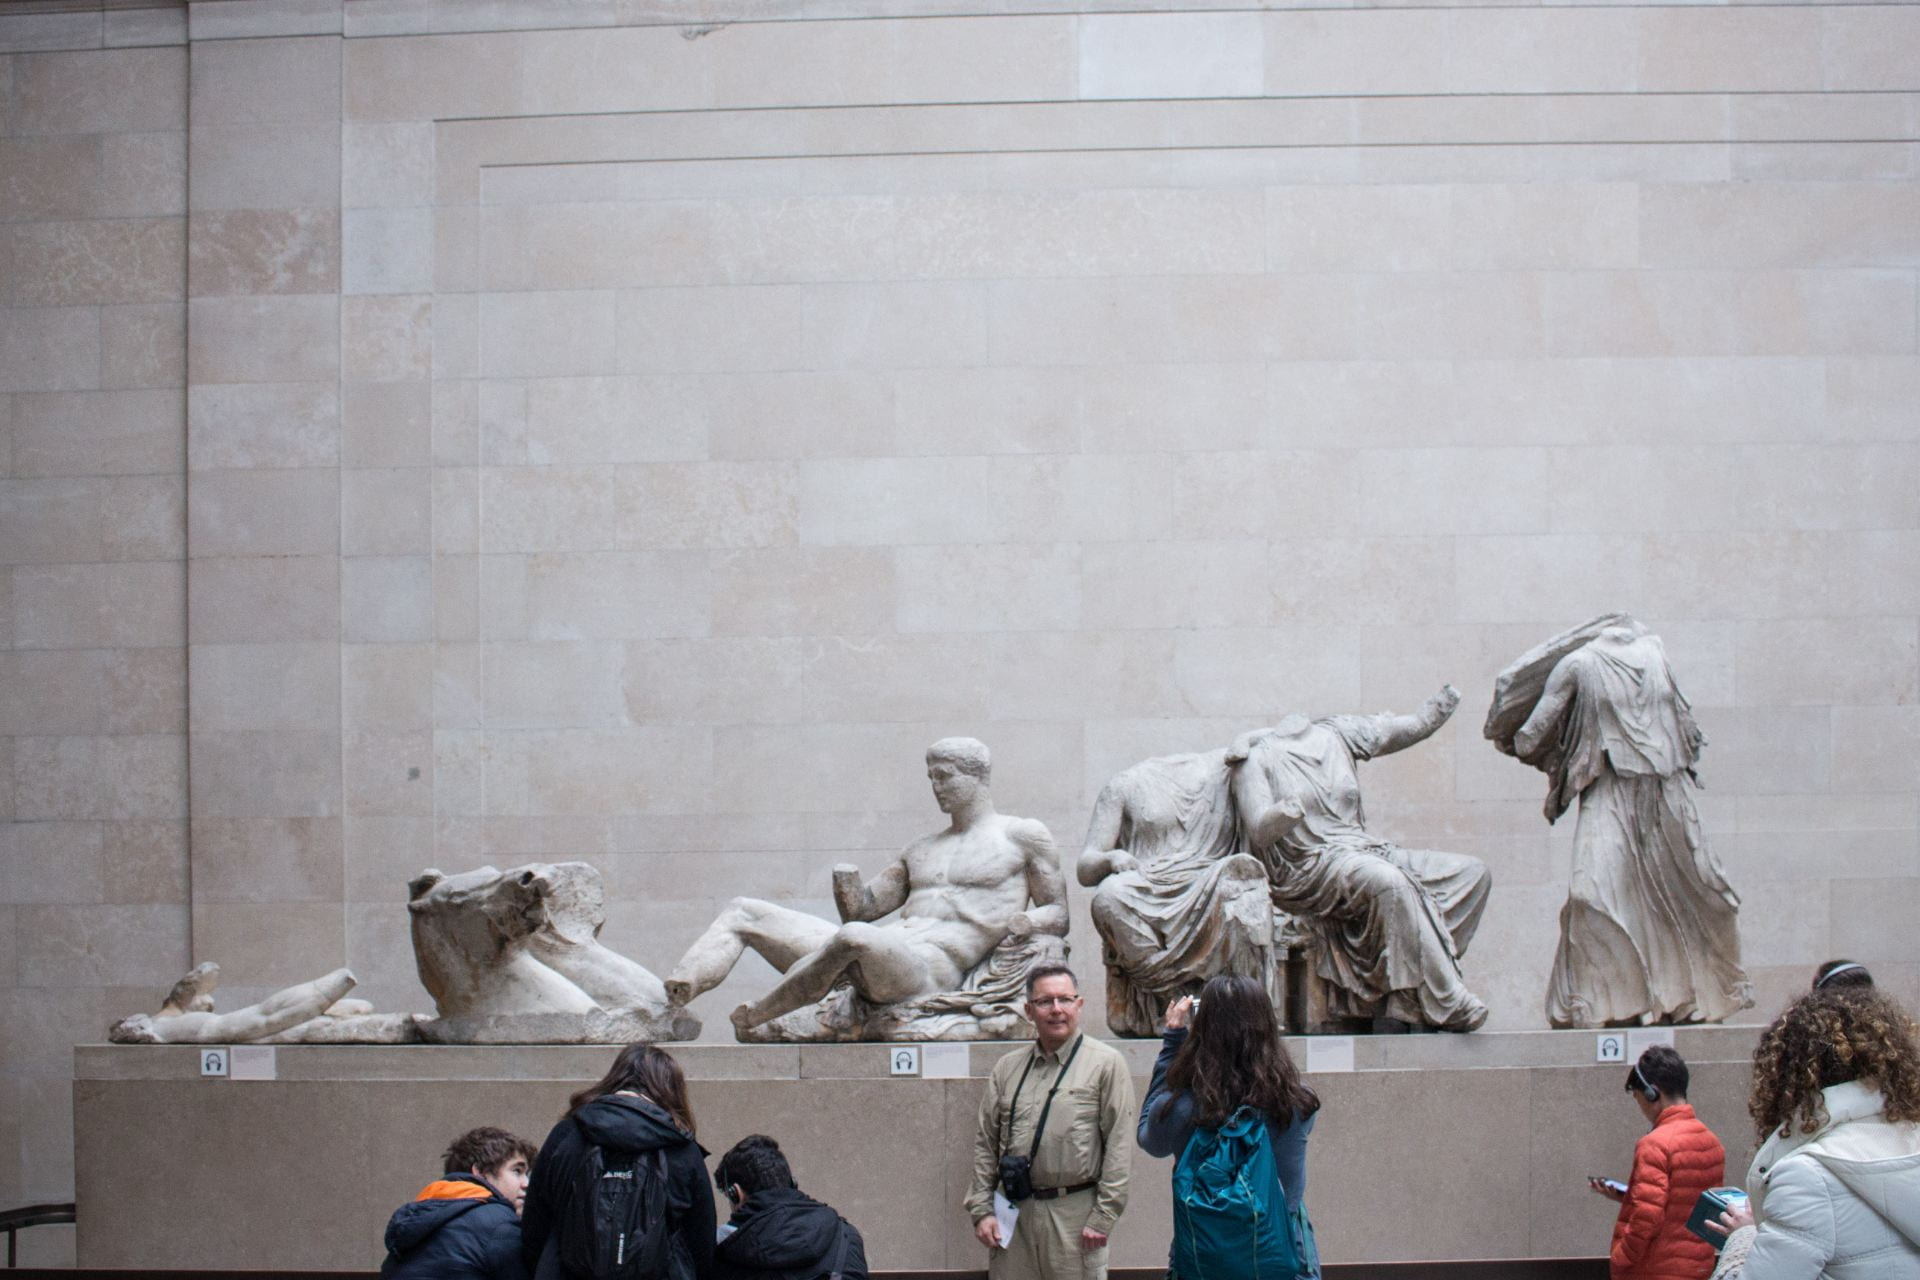 Image of Parthenon Marbles at the British Museum